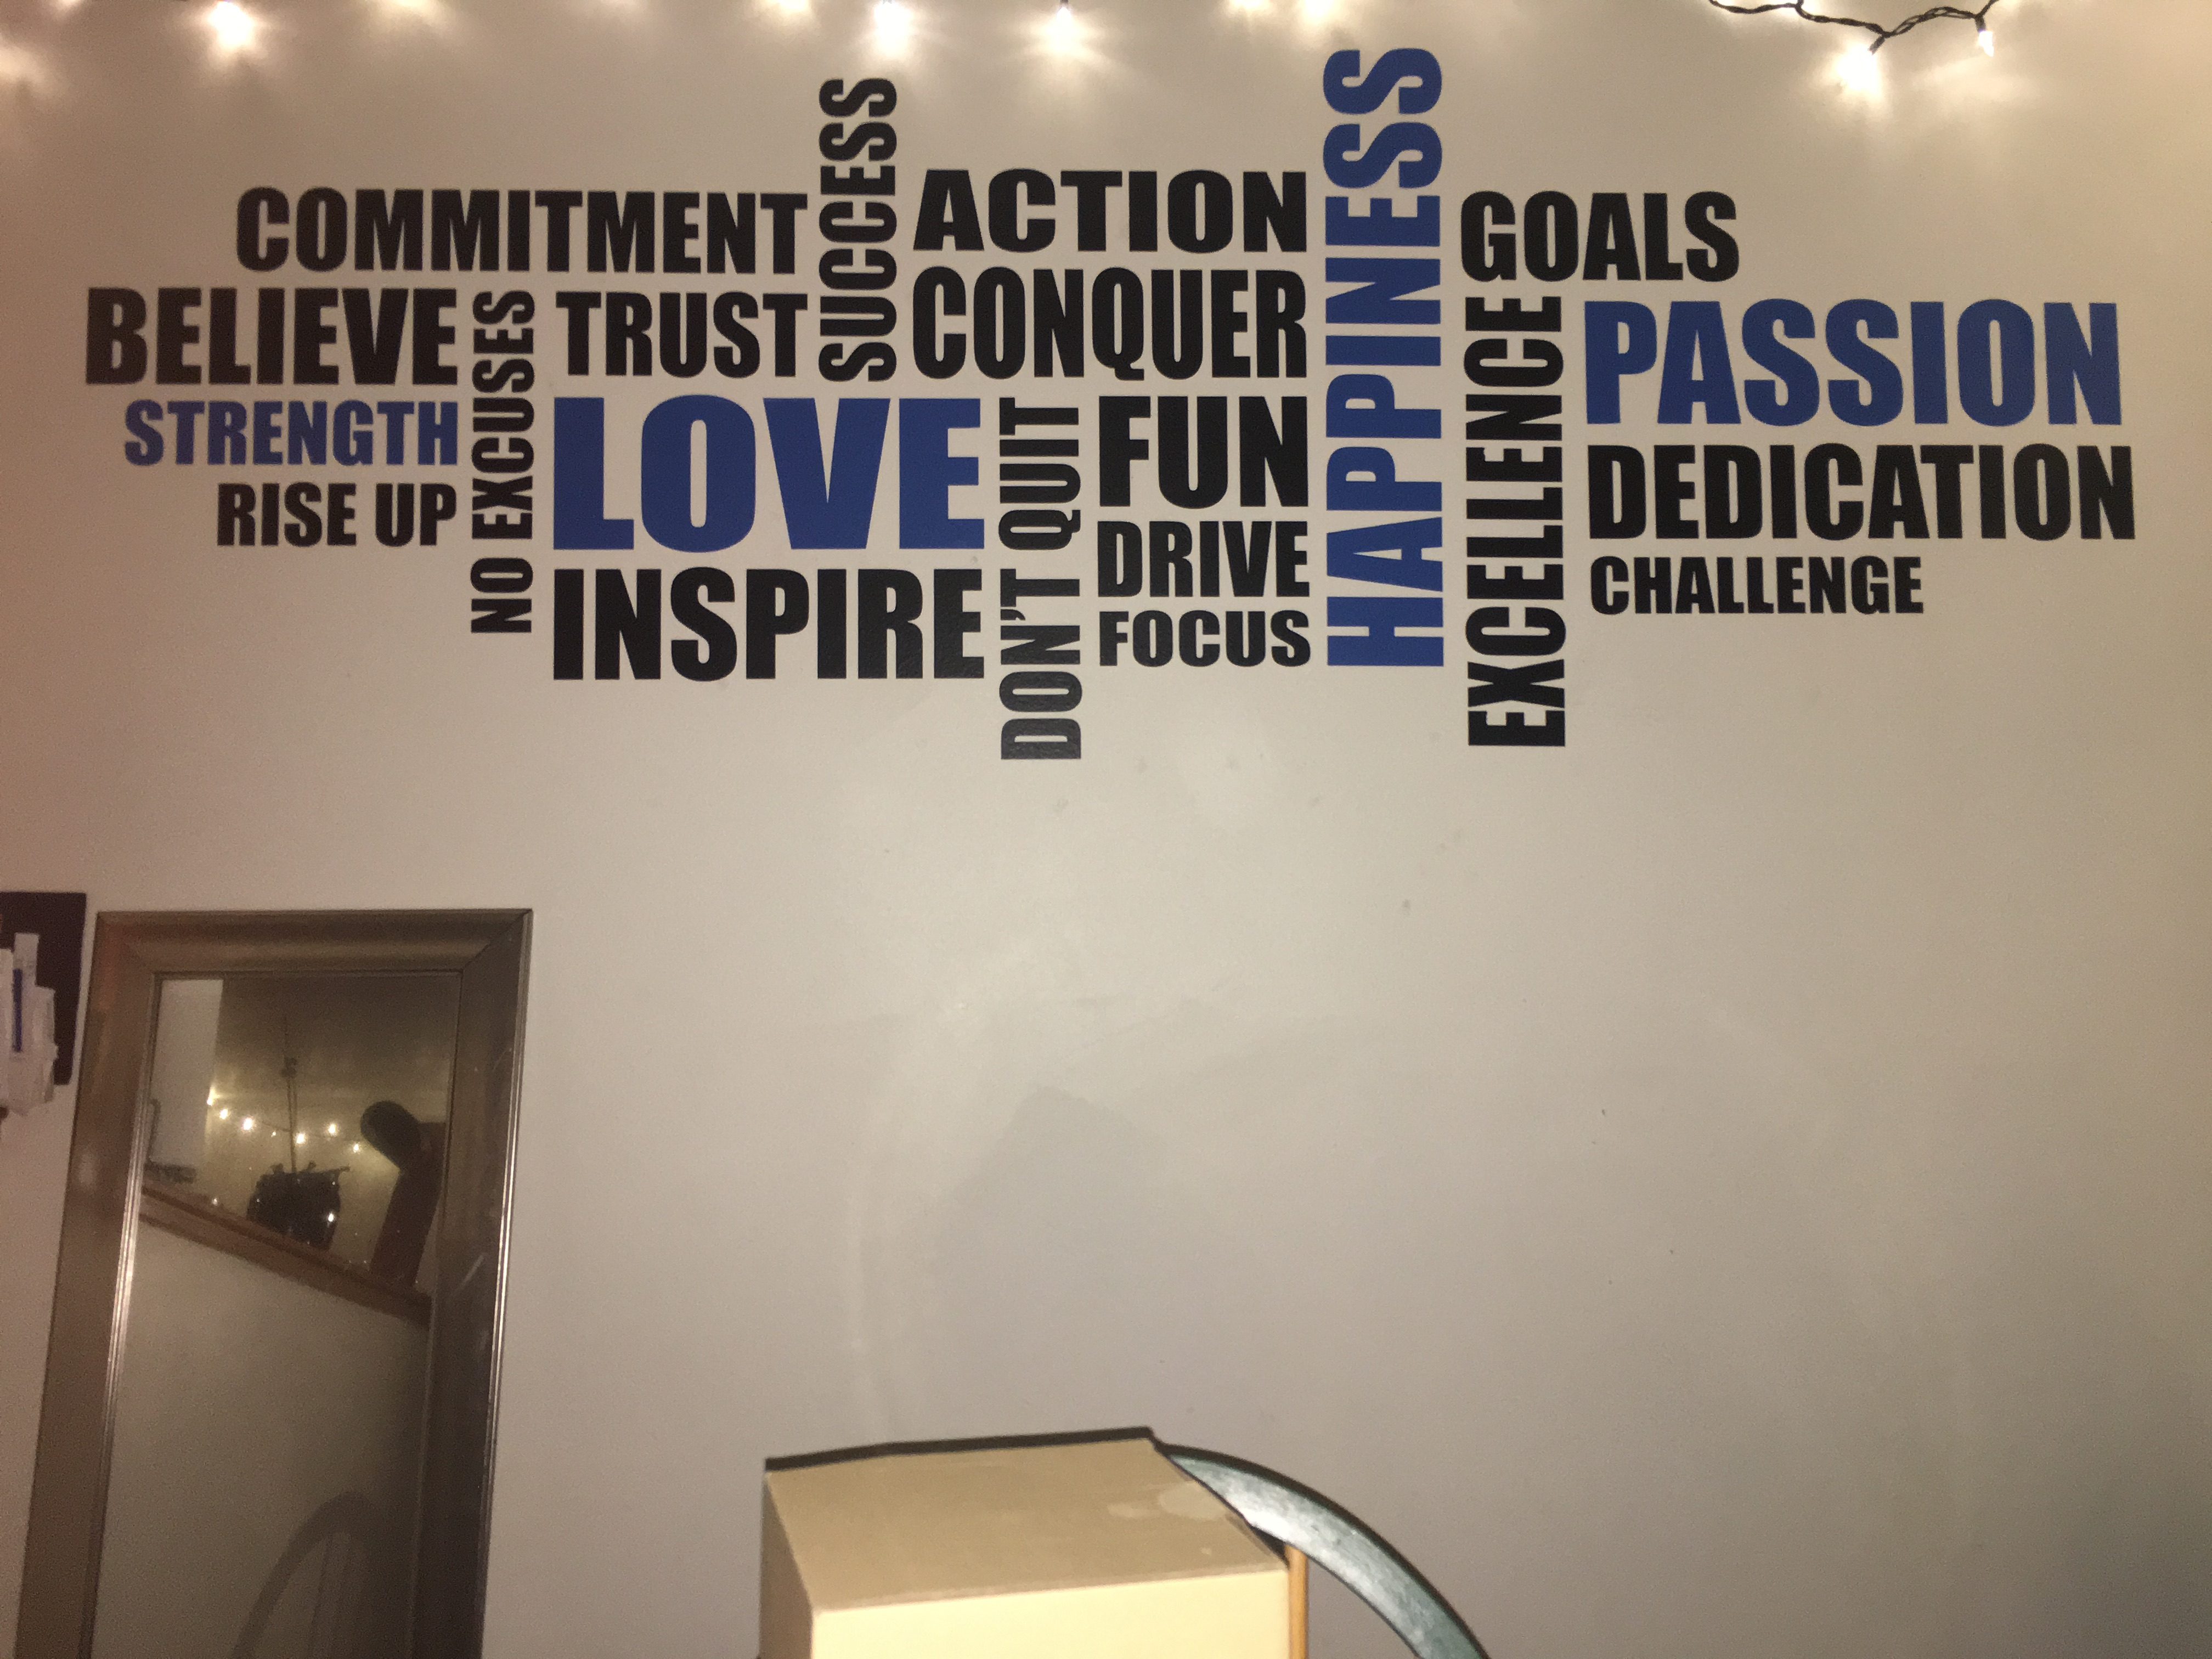 Wall Lettering and inspirational quotes